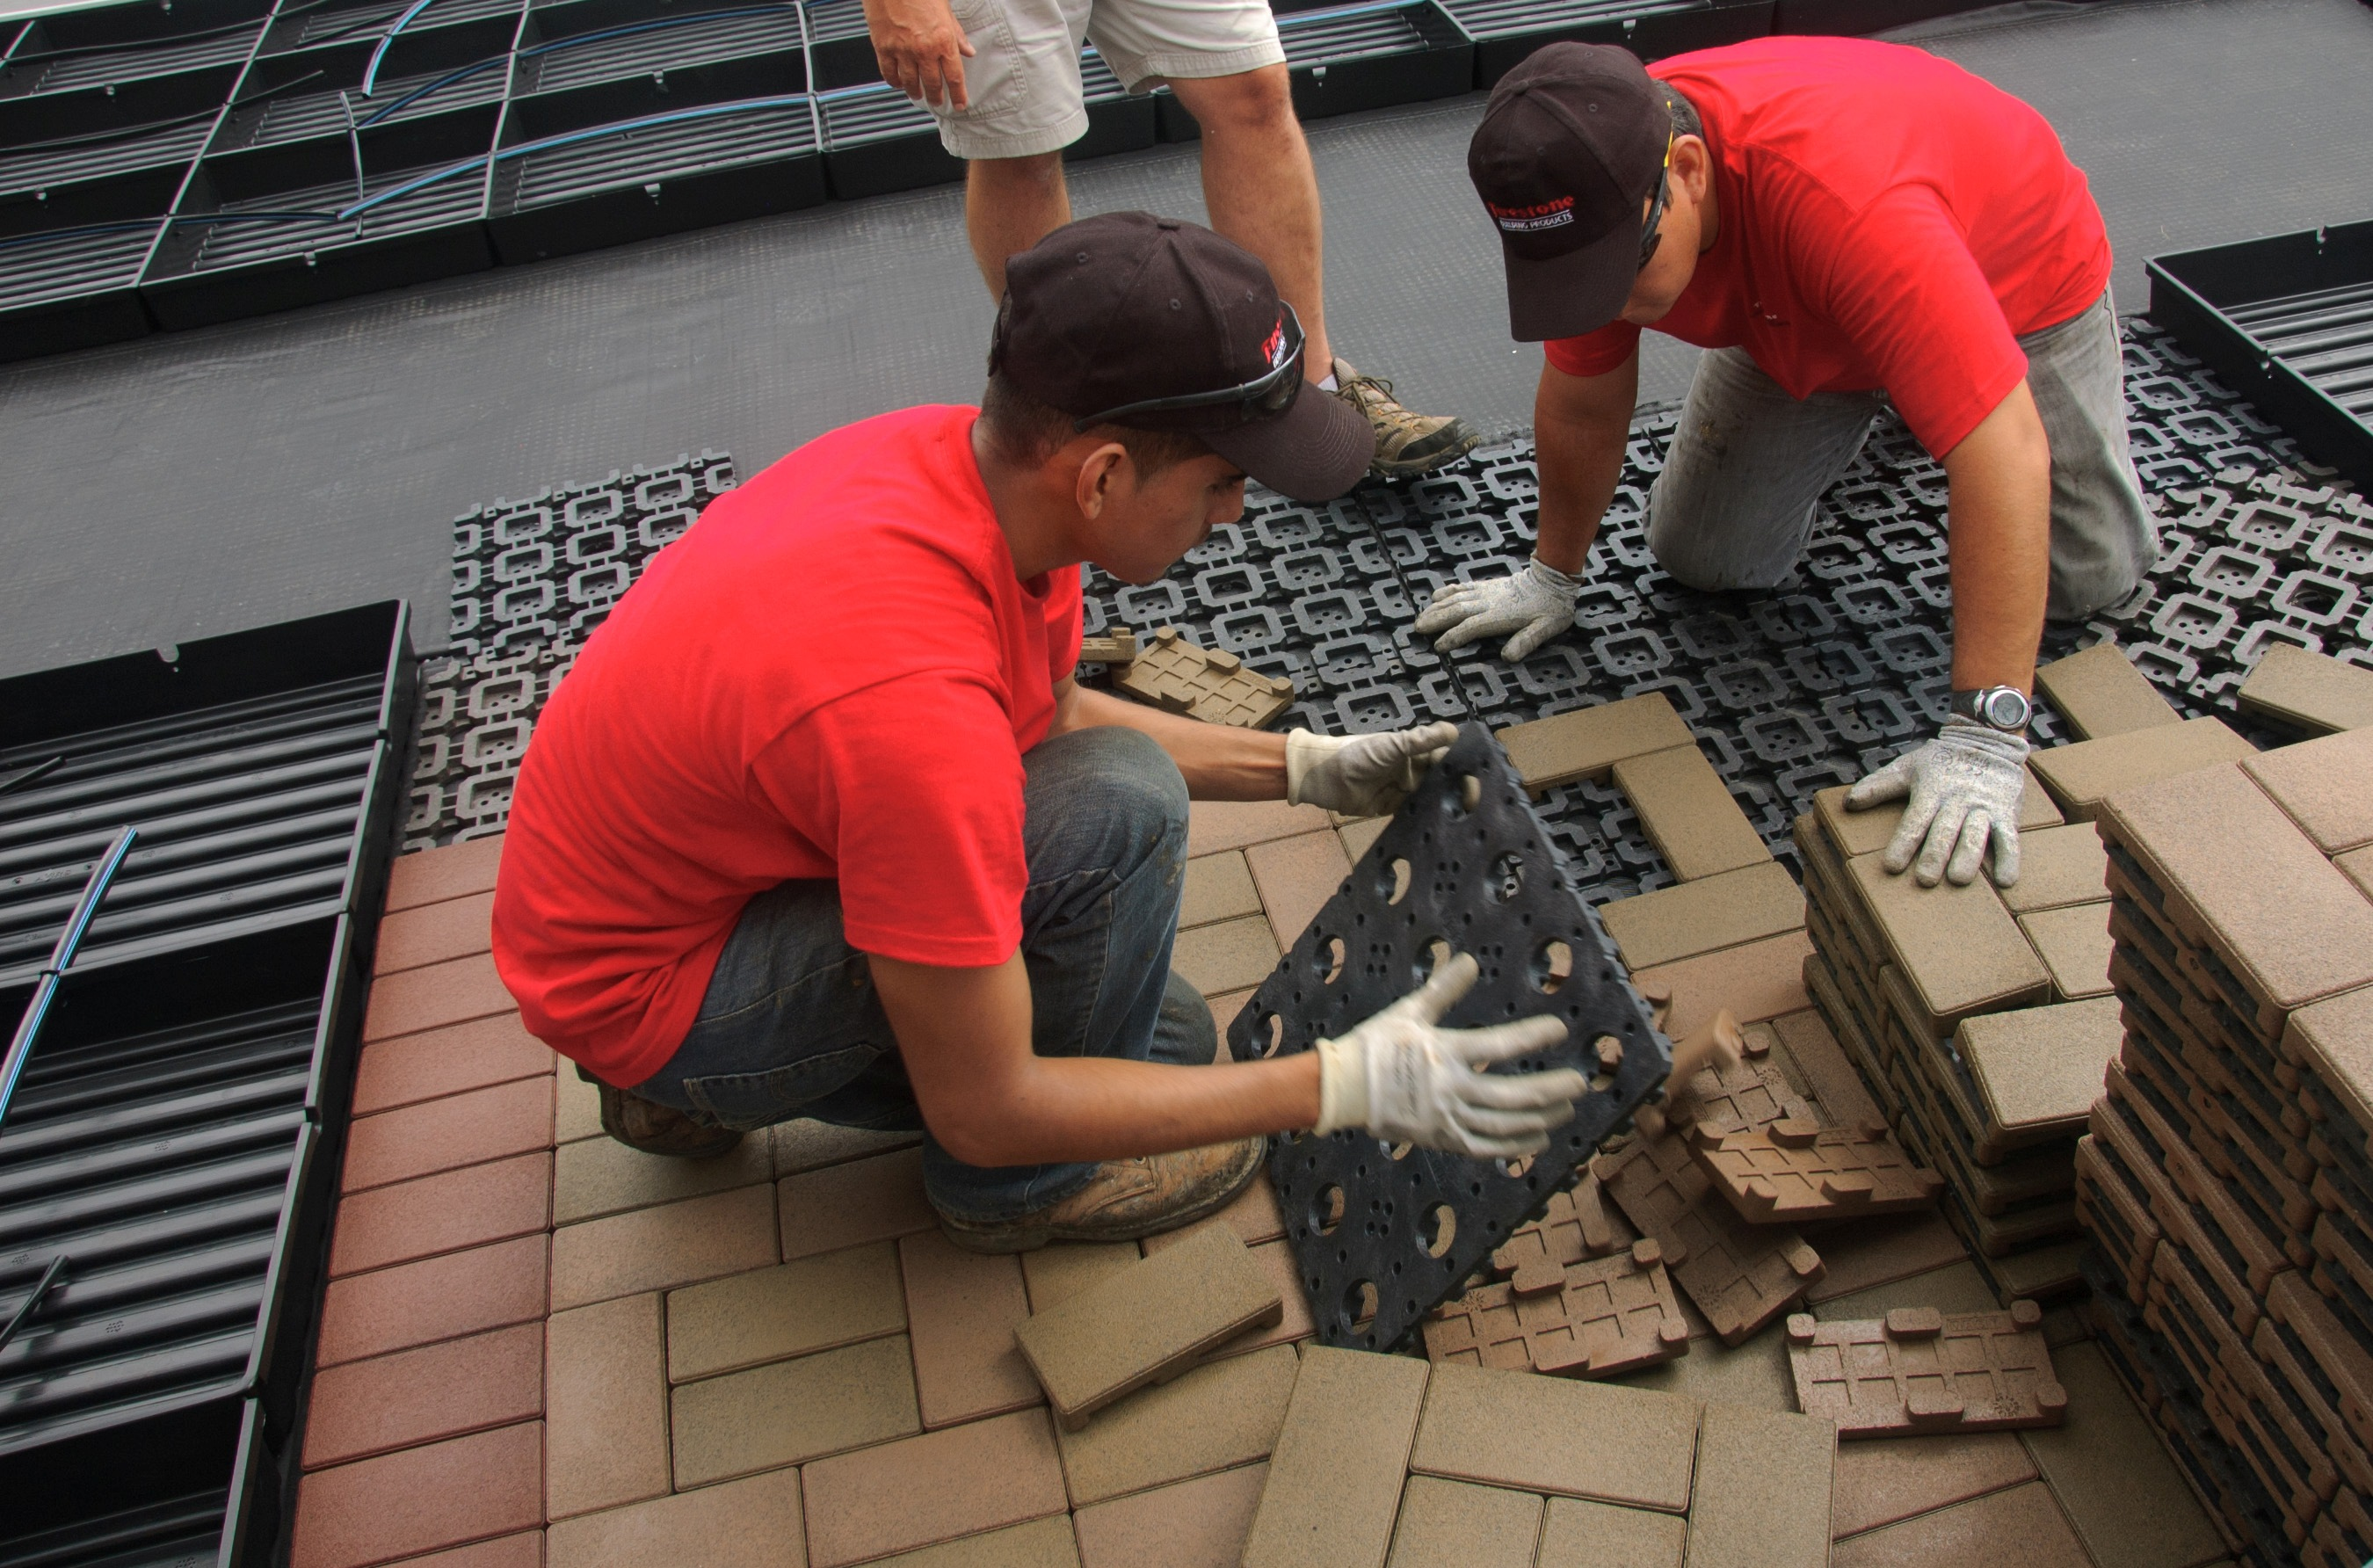 ... Firestone SkyPaver Composite Roof PaversOne Third The Weight Of  Concrete Pavers, SkyPavers Require Fewer Crane Lifts Up To Rooftops And Are  Easier For ...